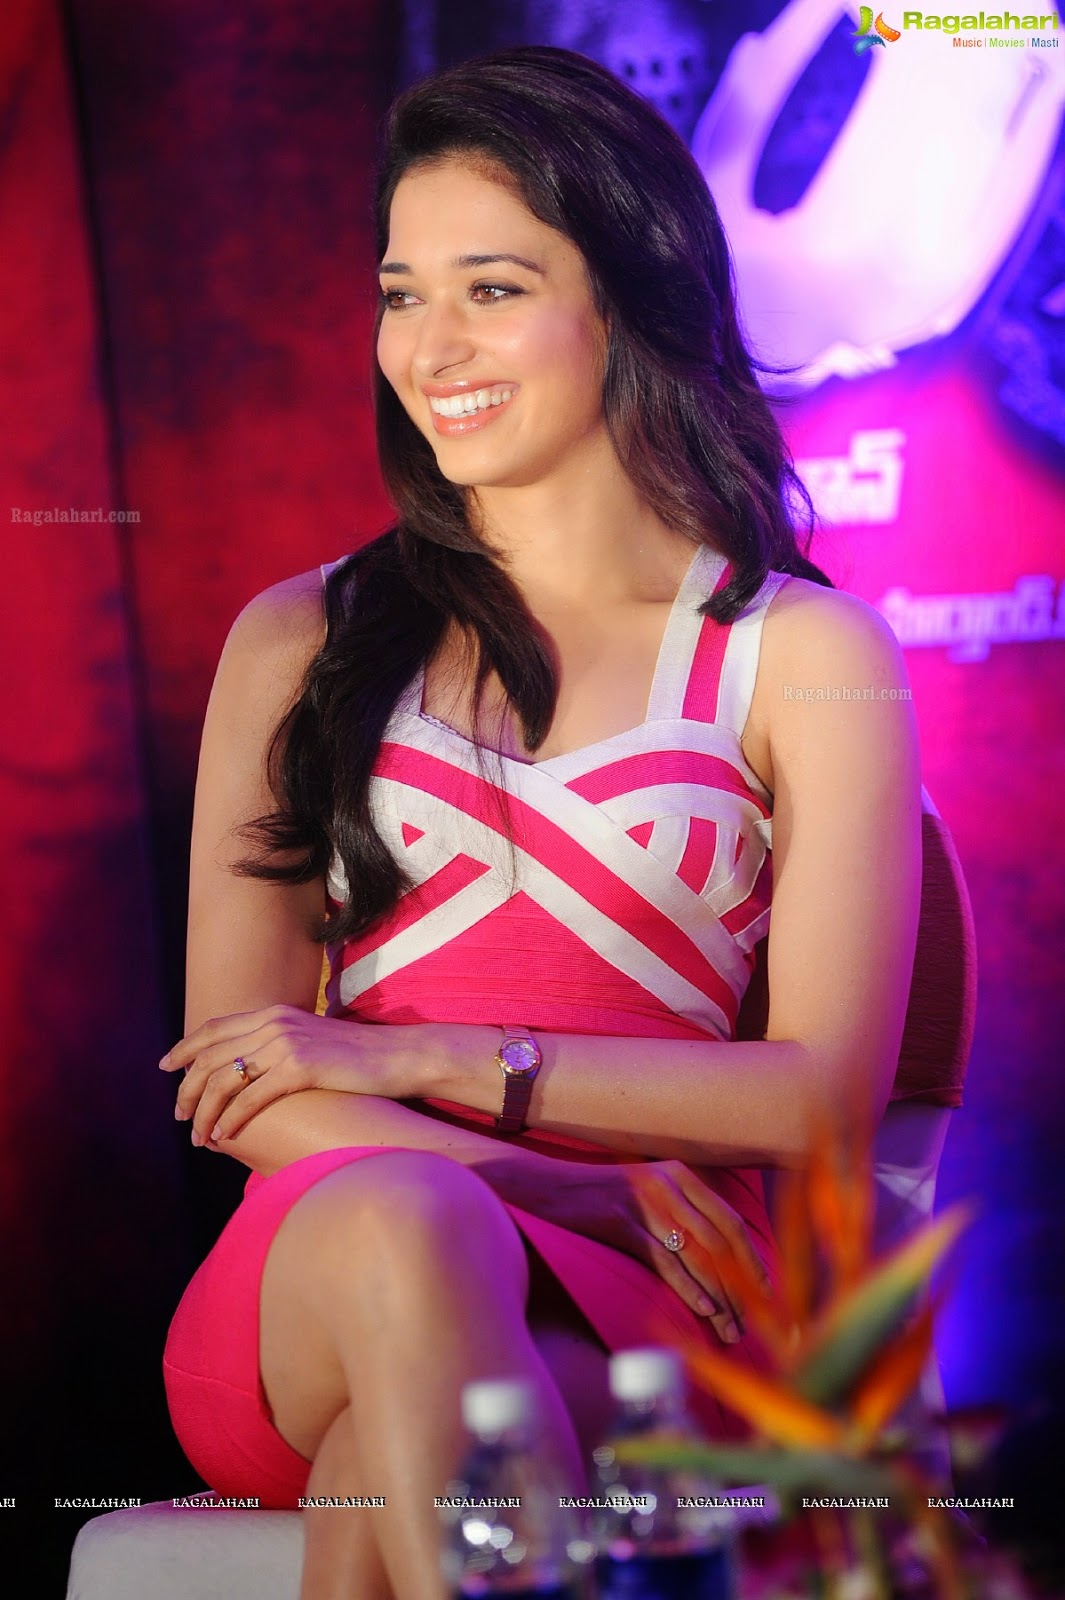 wsww: tollywood tamanna pink mini capri dress latest stills photos